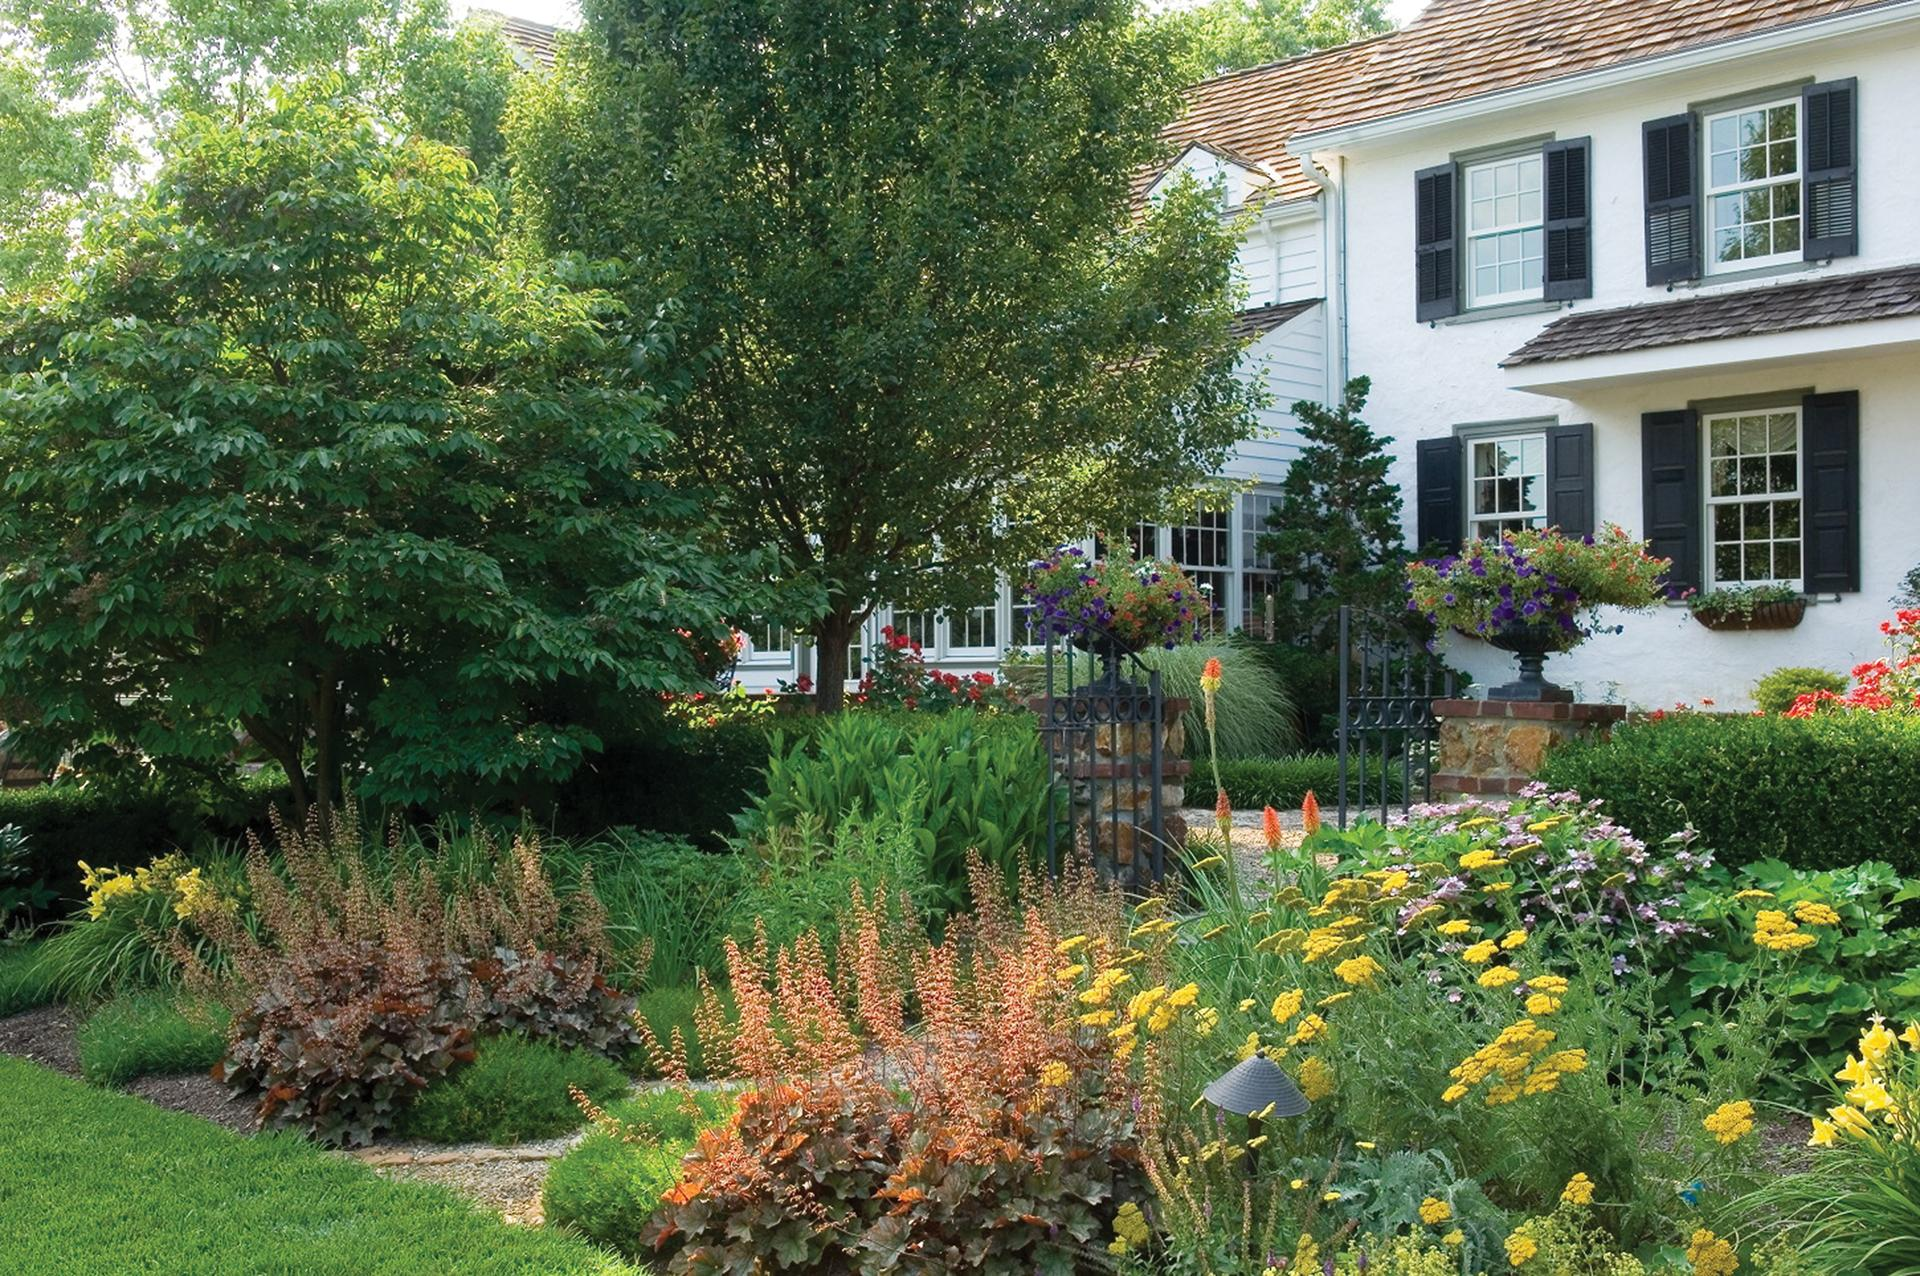 garden-design-perennial-garden-colorful-bright